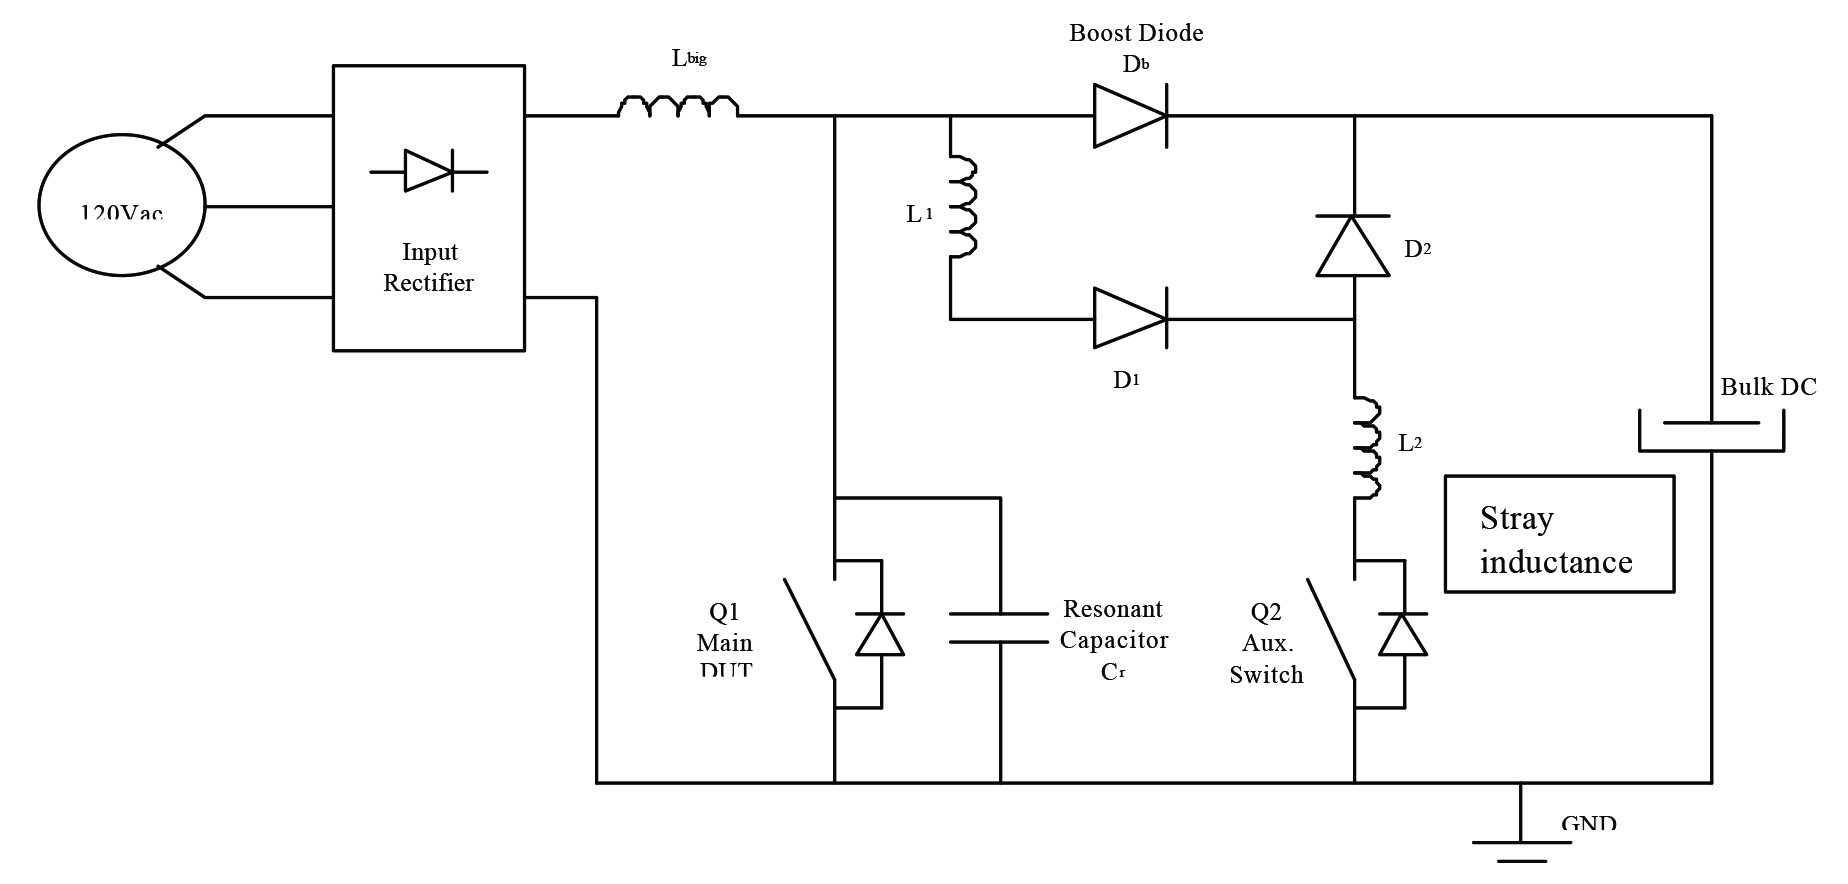 Igbt Or Mosfet Choose Wisely Ee Publishers Voltage Switch Circuit 4 A Typical Zvs Pfc The Auxillary At Q2 Is Used To Reset Boost Diode Ensure That Main Q1 Only Switched During Zero